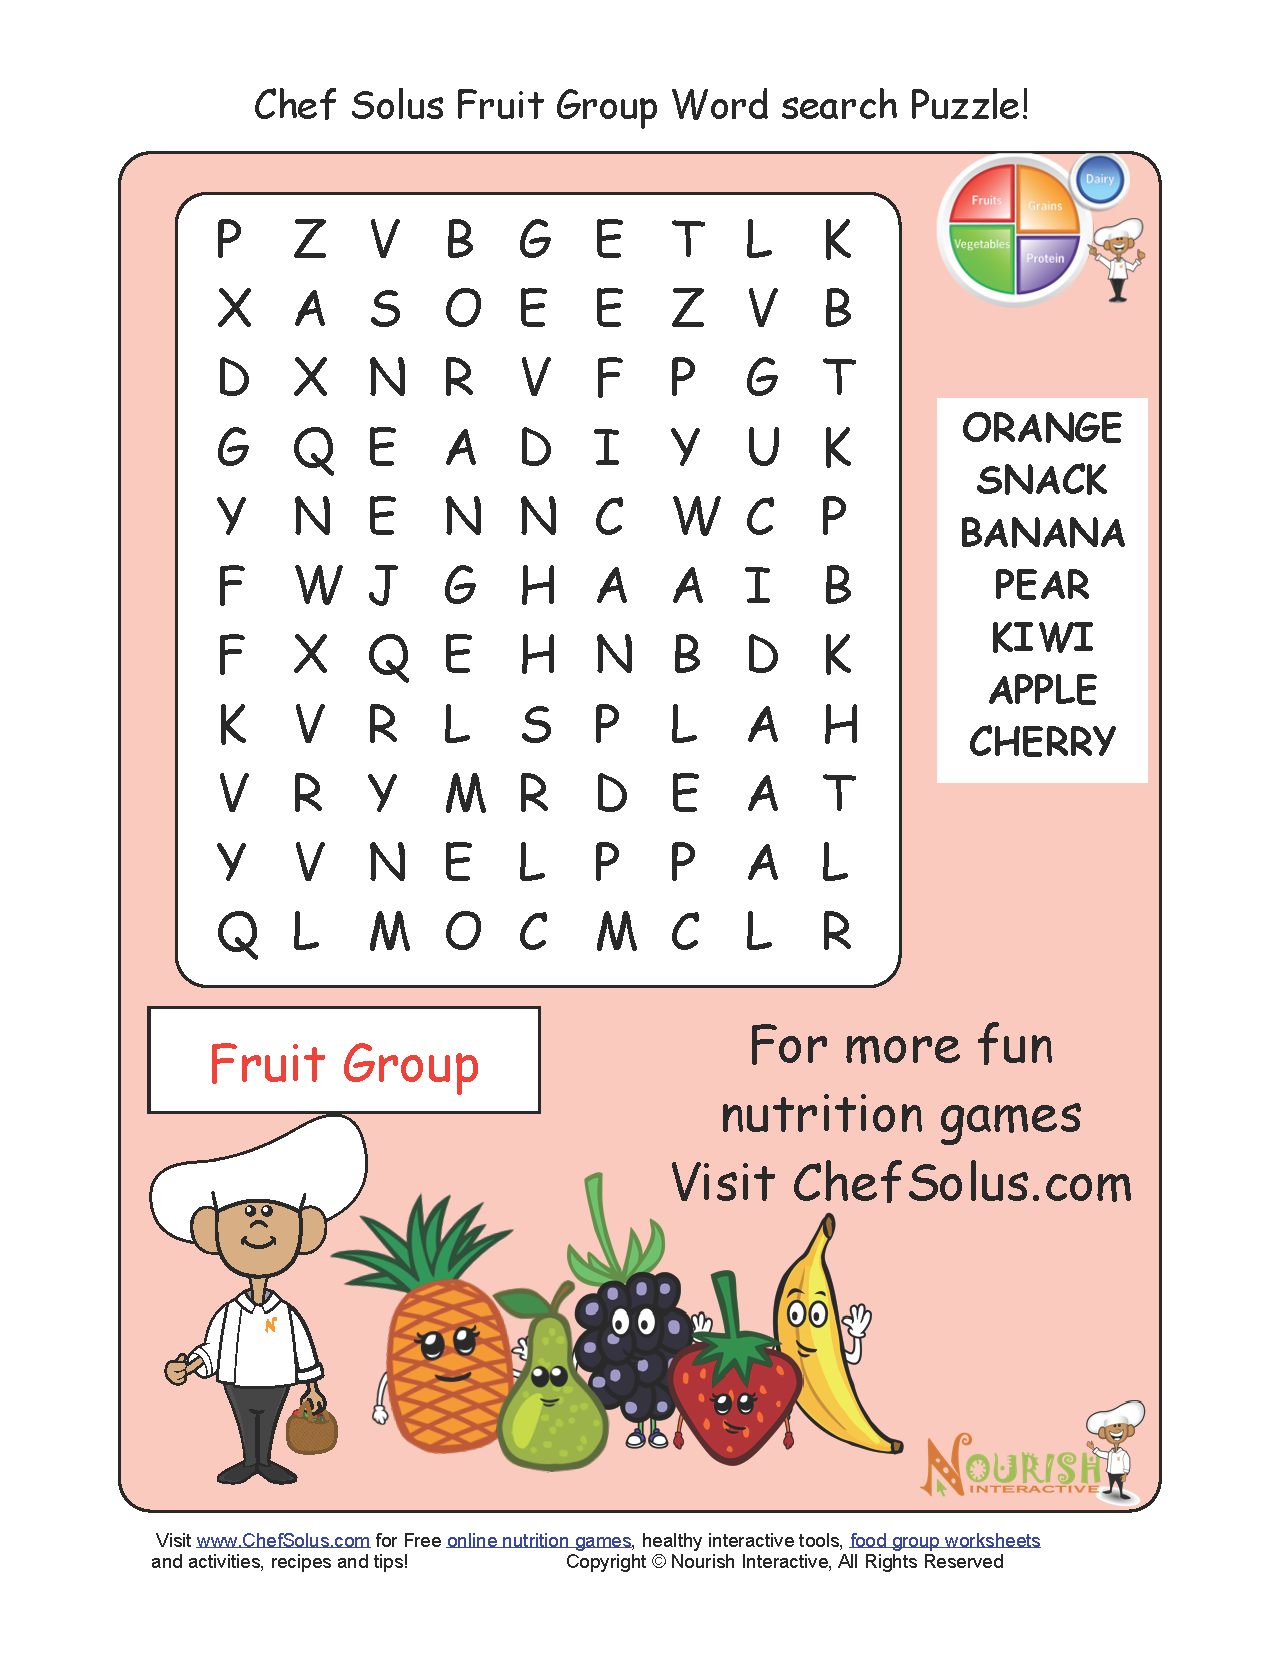 Challenge Your Little Chefs To A Fruit Group Word Search - Printable Nutrition Puzzles